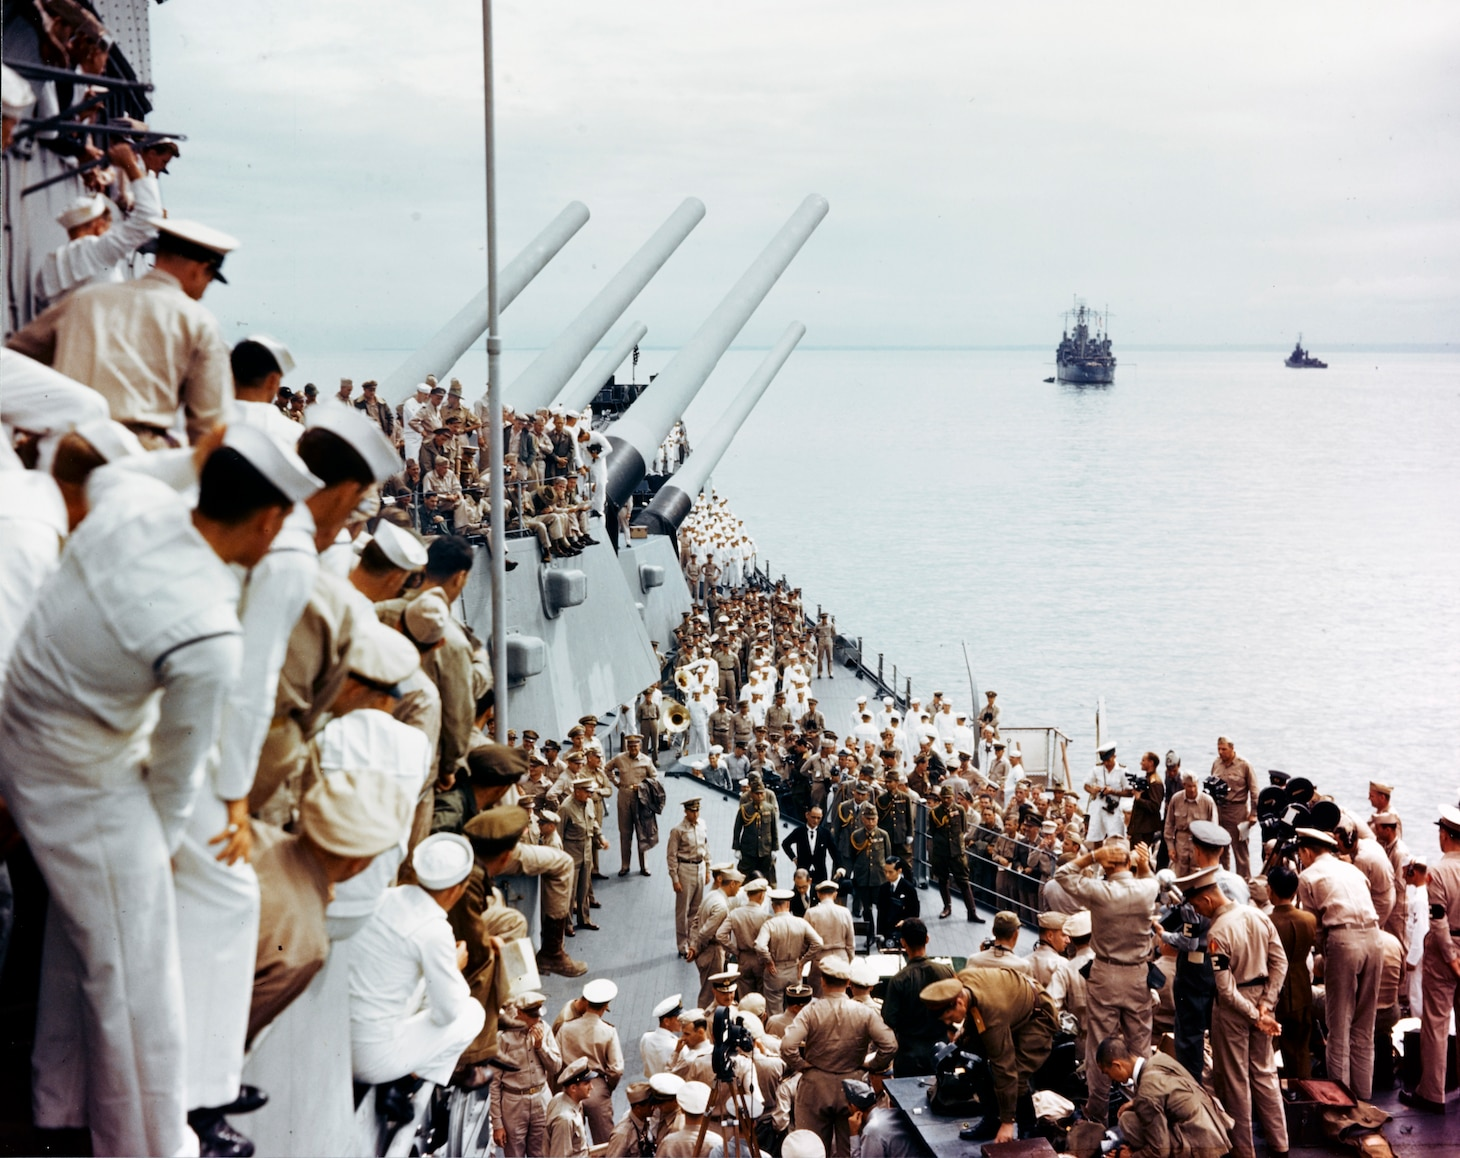 Sailors aboard the battleship USS Missouri (BB-63) watch the signing of the Instrument of Surrender, Sept. 2, 1945 in Tokyo Bay.